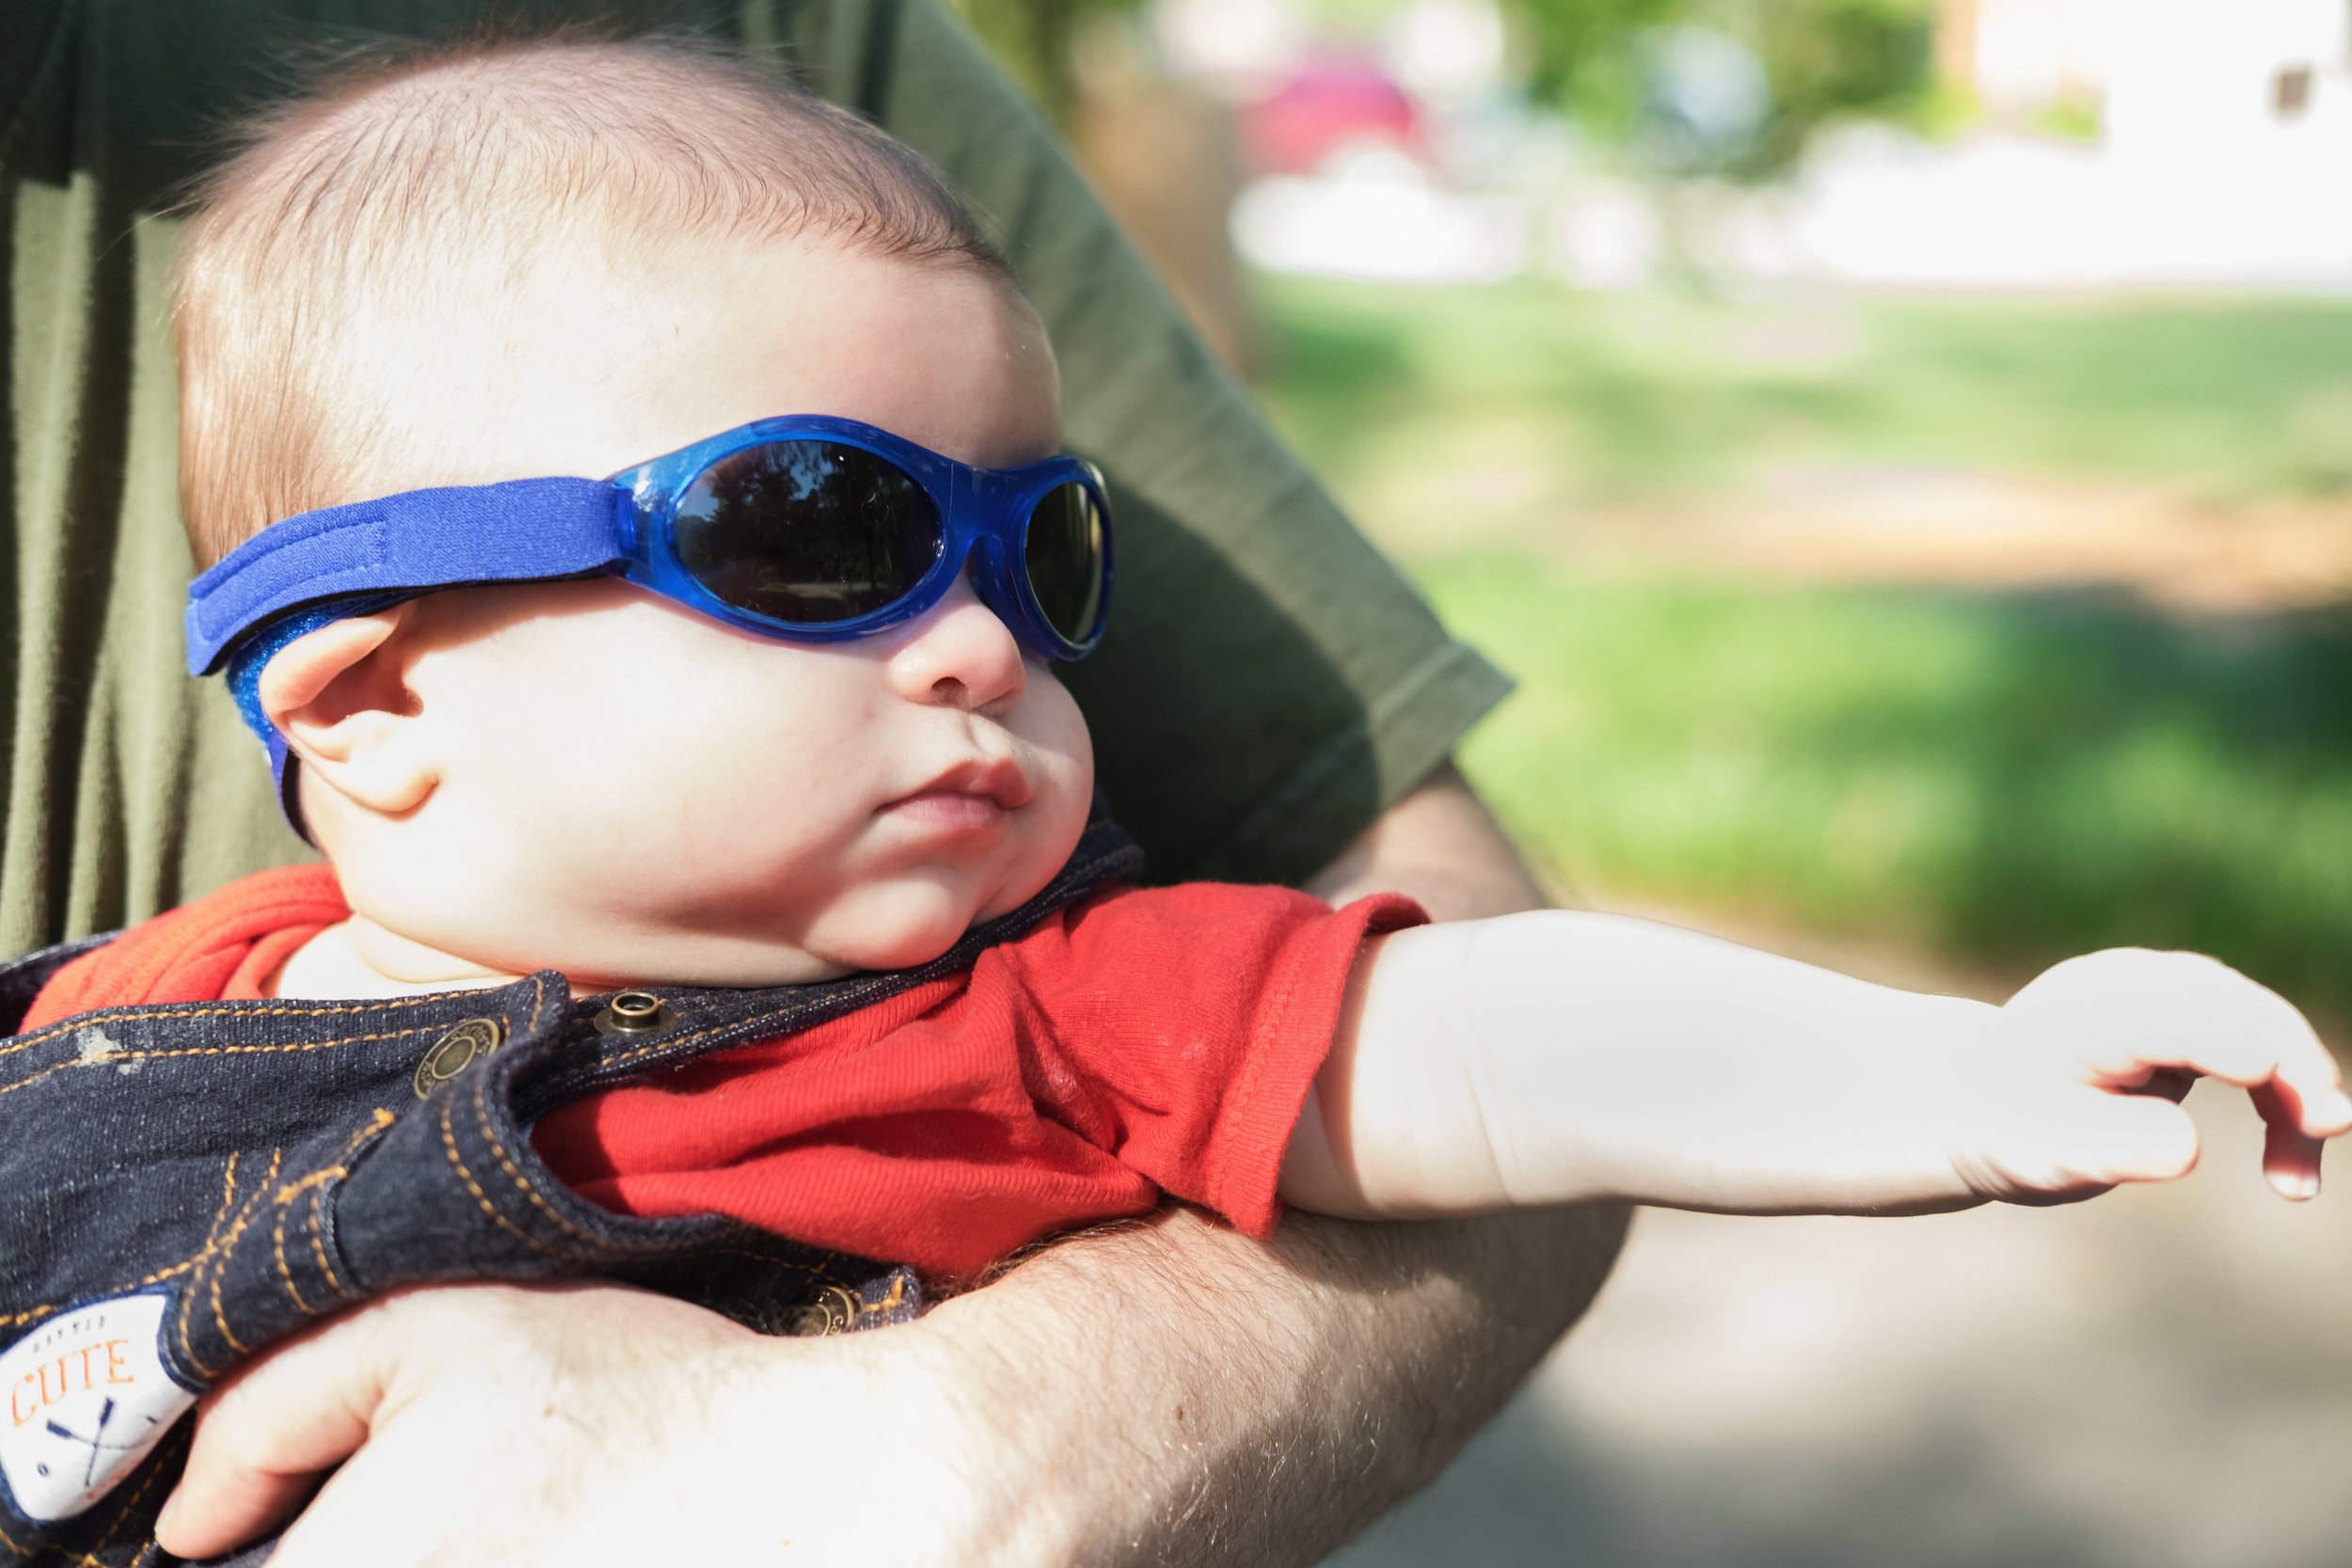 Overexposed with lots of blown highlights but I'm looking past all of that because......baby in sunglasses. ;)